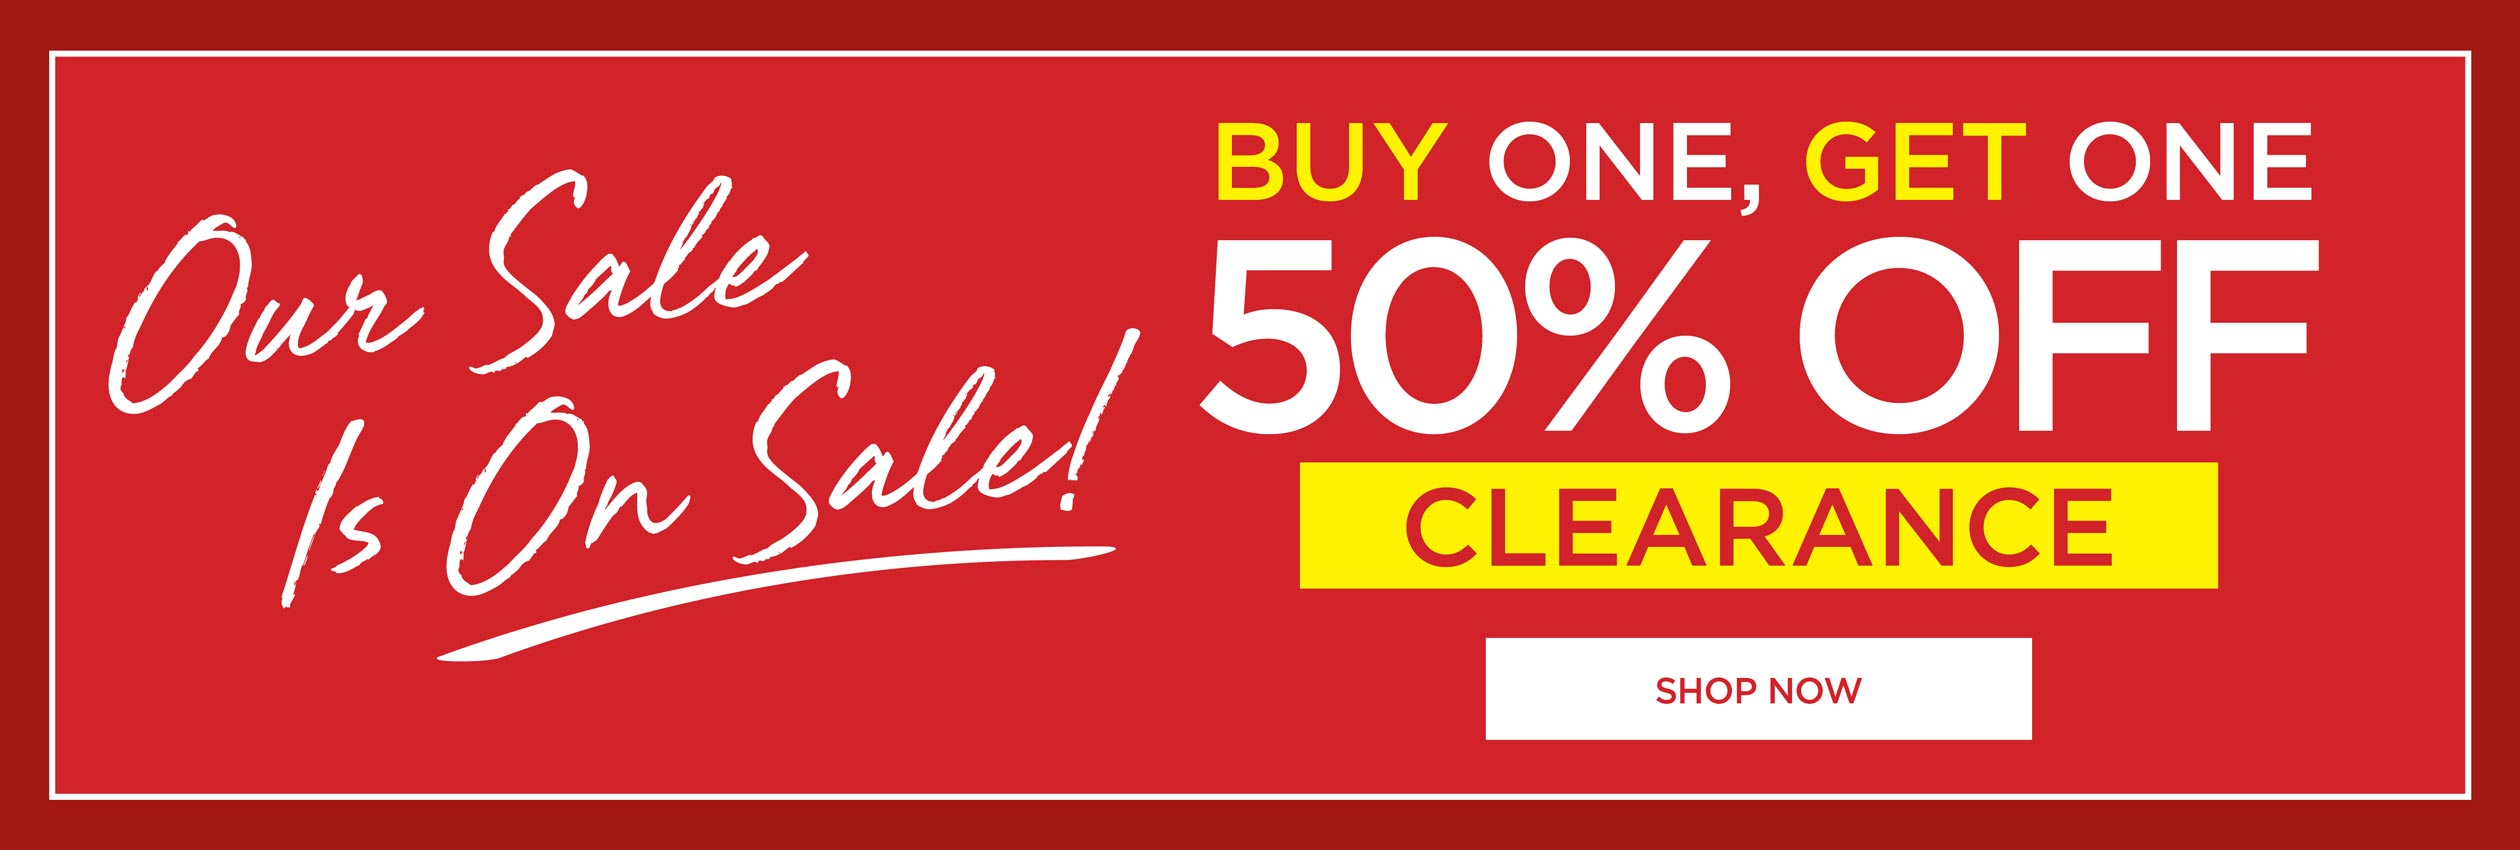 Our Sale is ON SALE! Buy One, Get one 50% OFF CLEARANCE - SHOP NOW